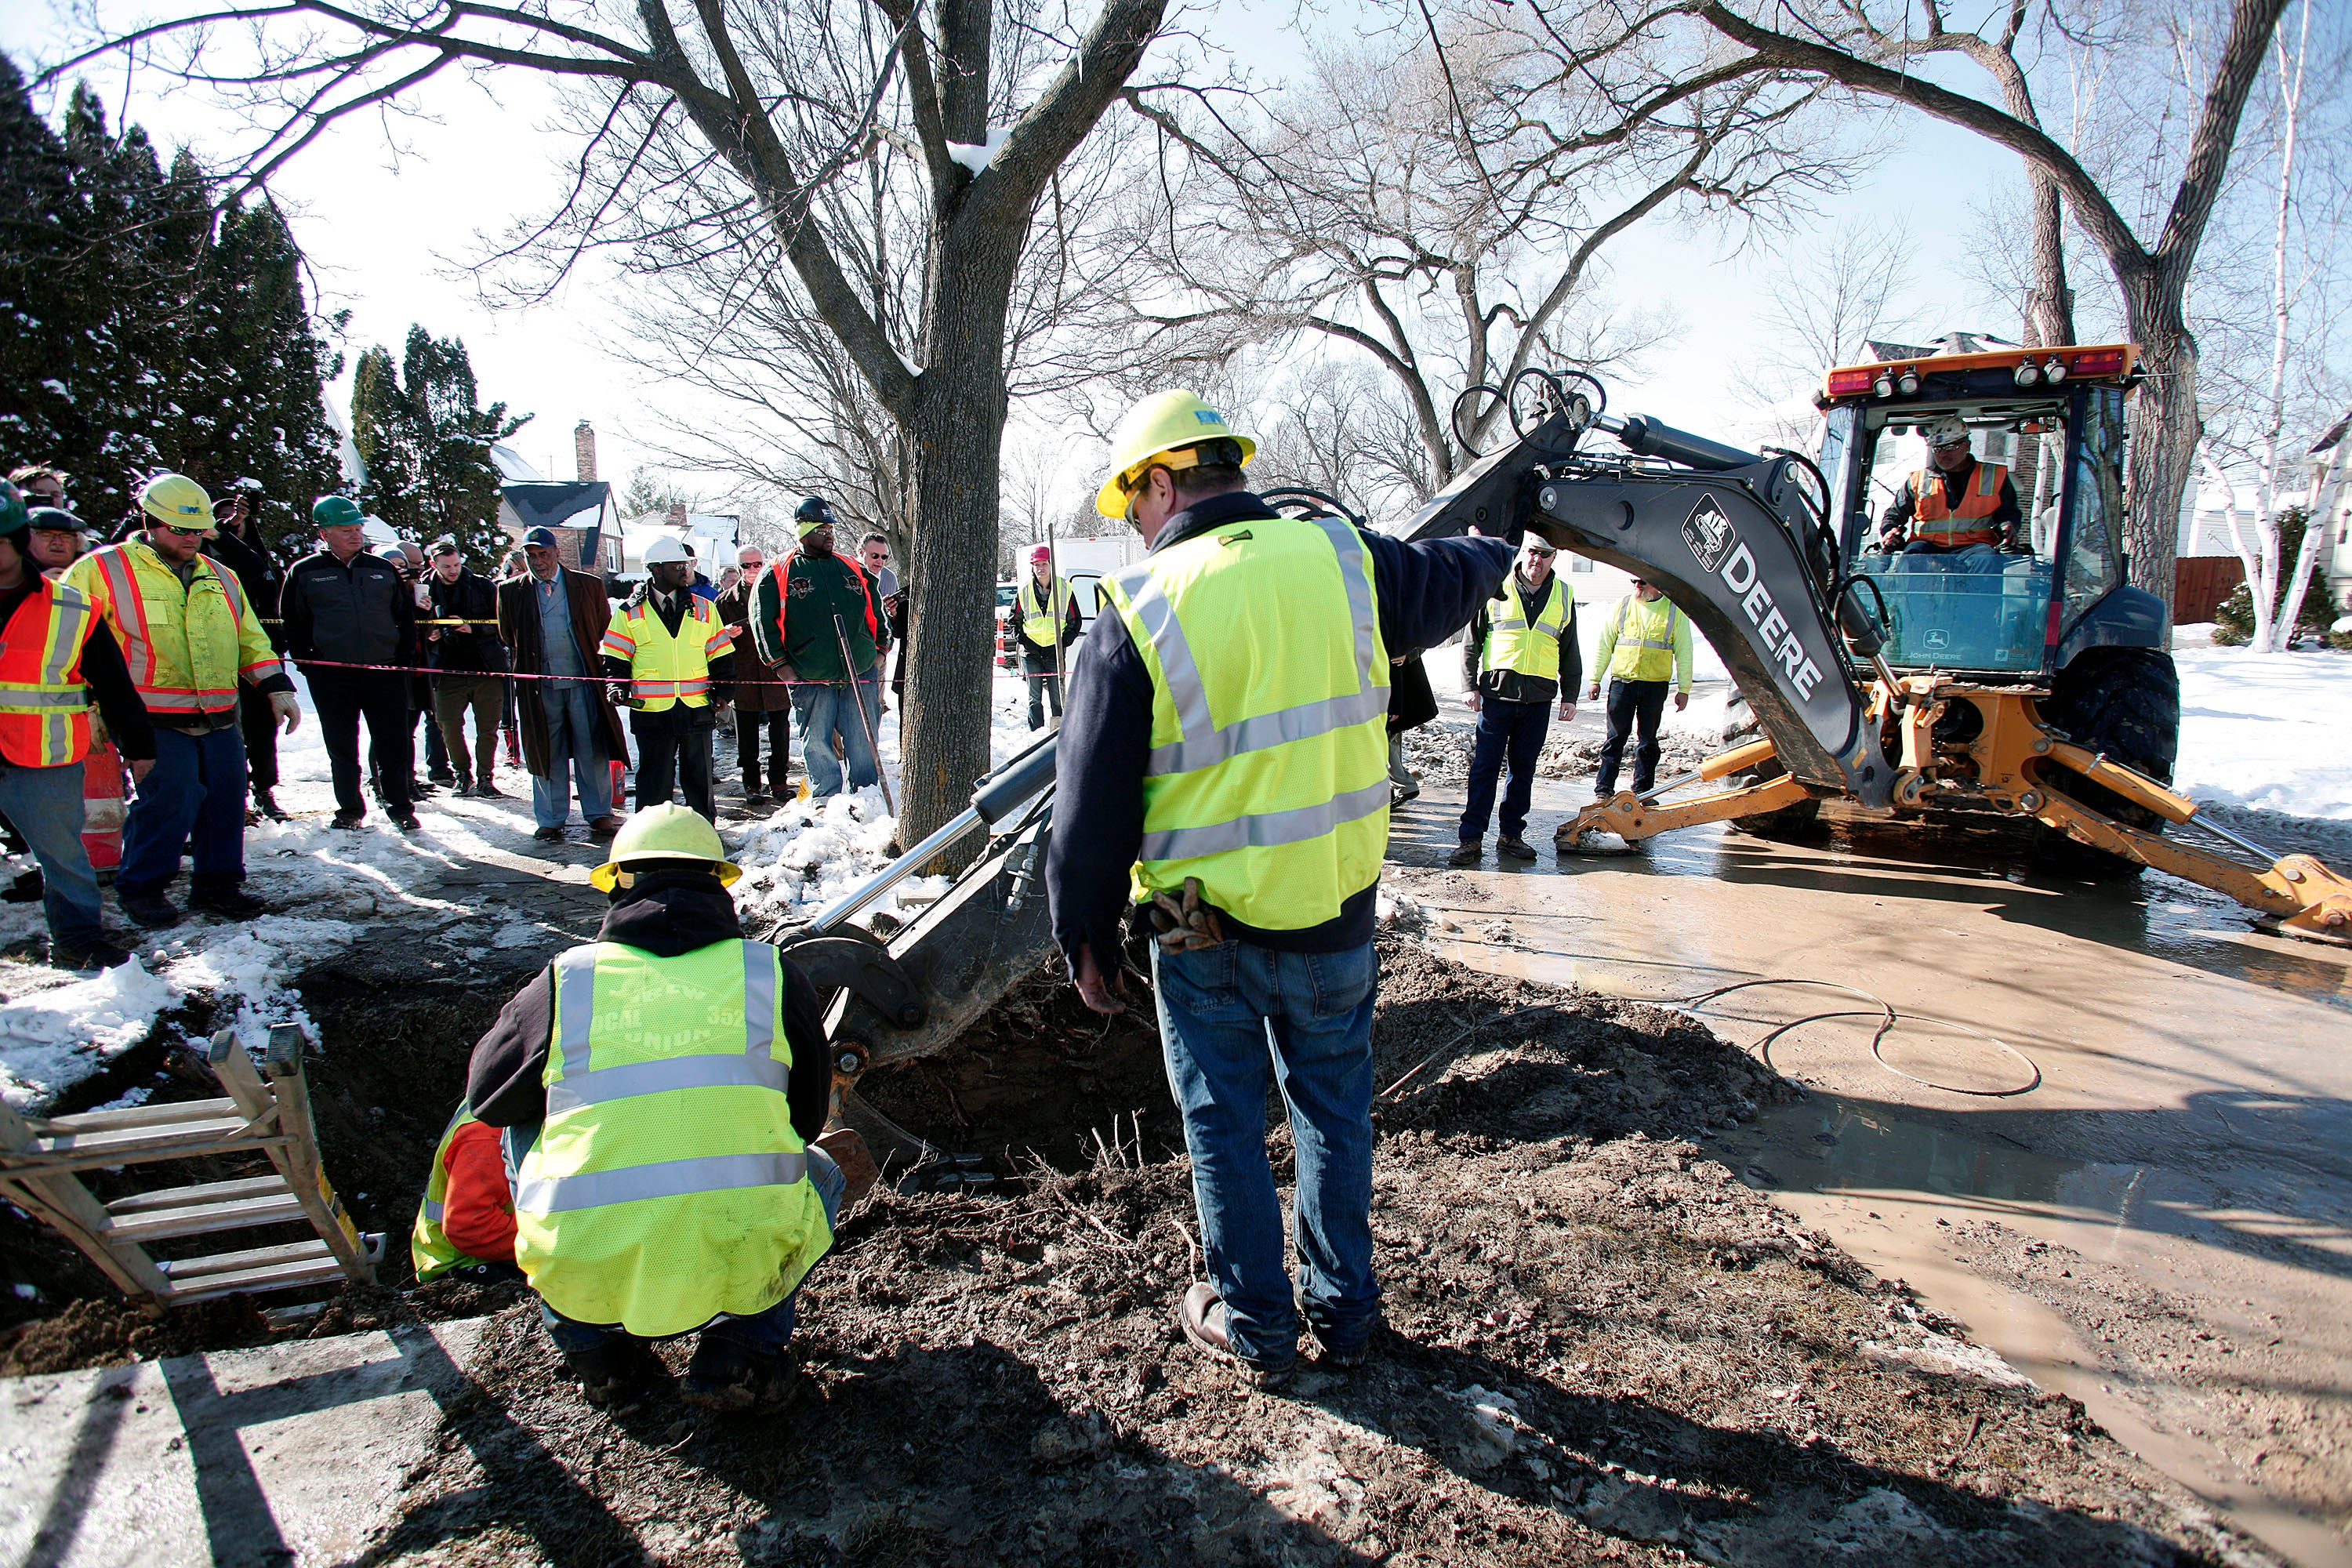 Flint Just Replaced Its First Lead Pipe (Only About 8,000 More to Go)